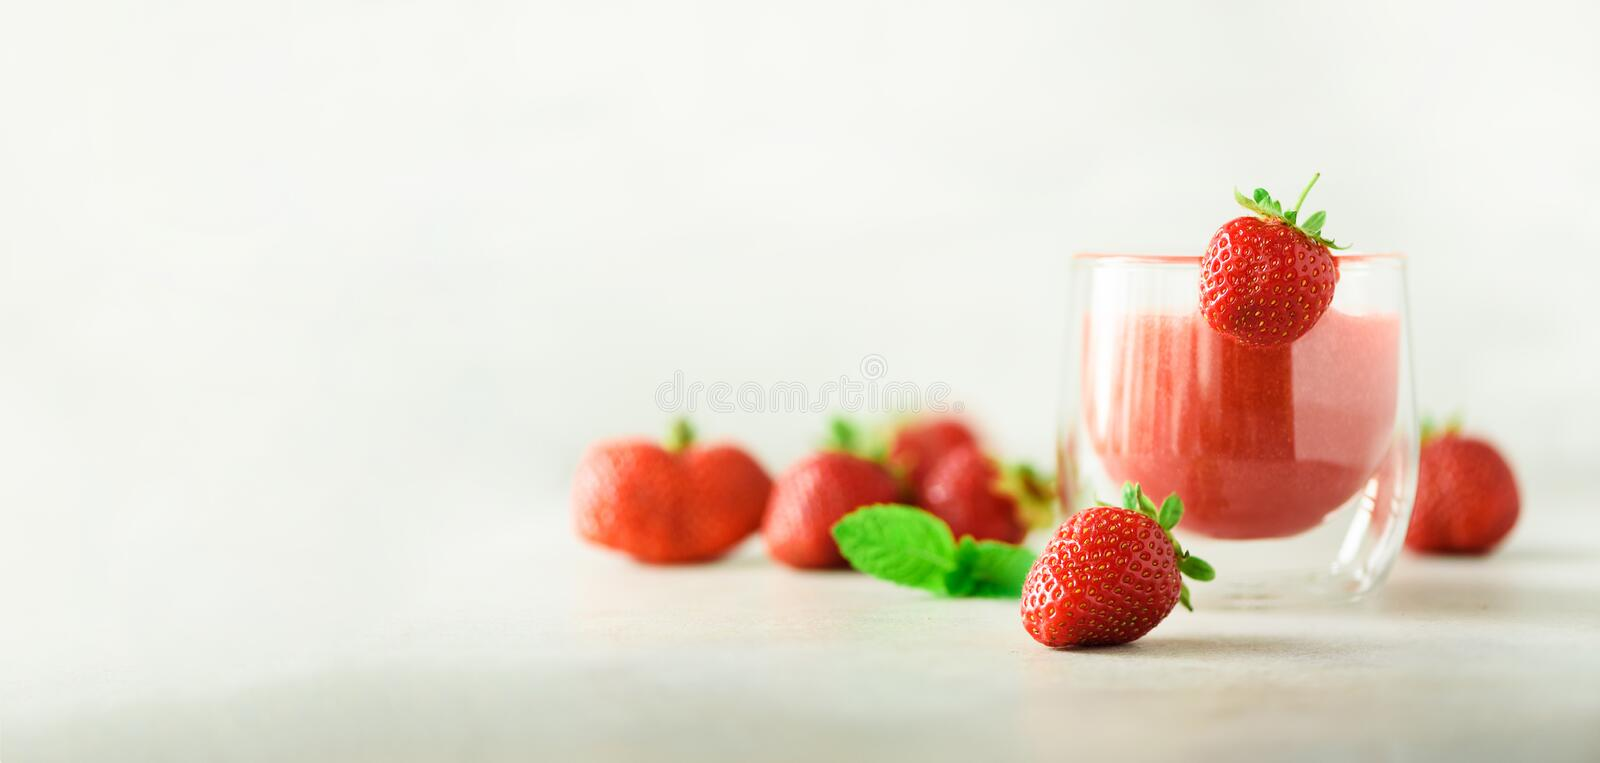 Healthy strawberry smoothie in glass on gray background with copy space. Banner. Summer food and clean eating concept stock photo